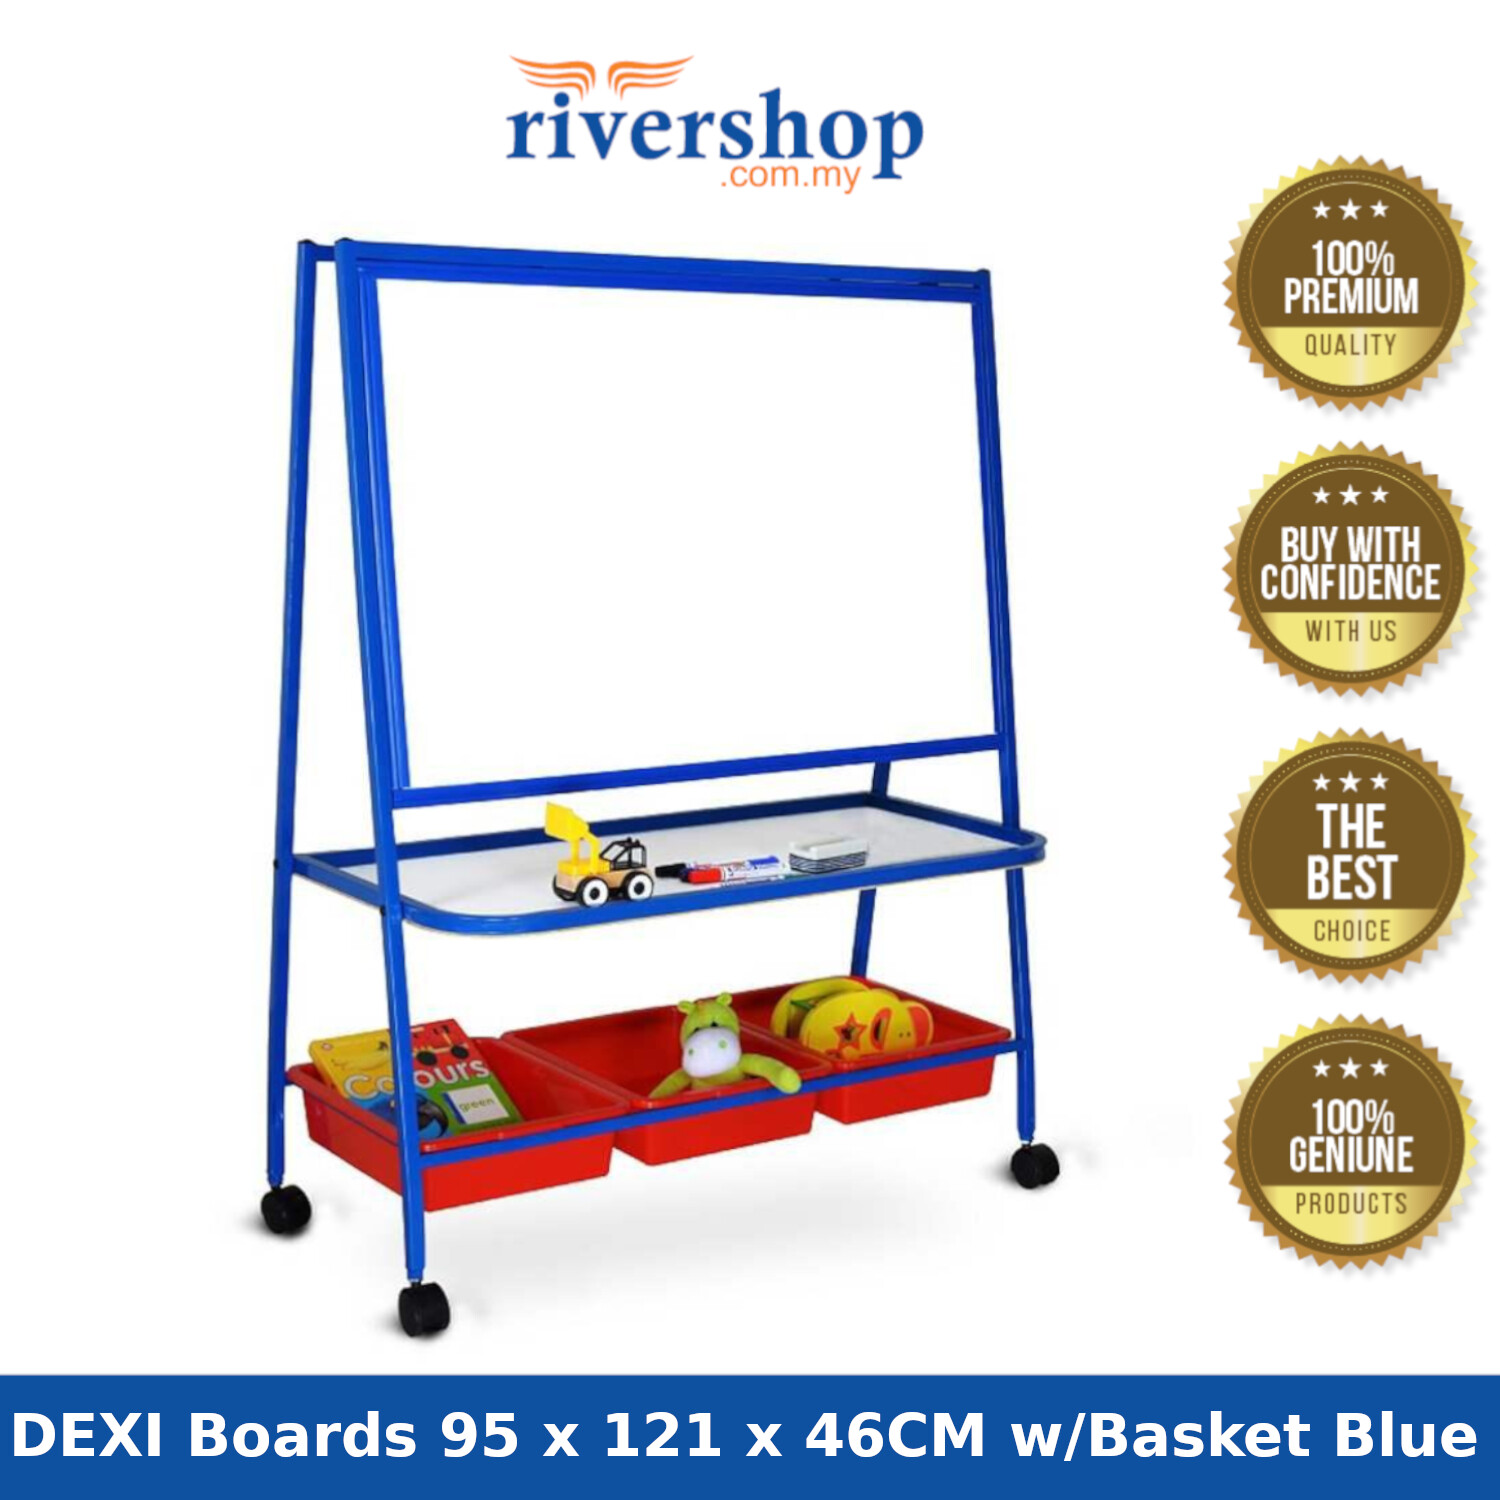 WP-K3S DEXI Boards 95 x 121 x 46CM with 4 Castors Single Sided Magnetic Whiteboard with 3 Baskets (Red/Blue)